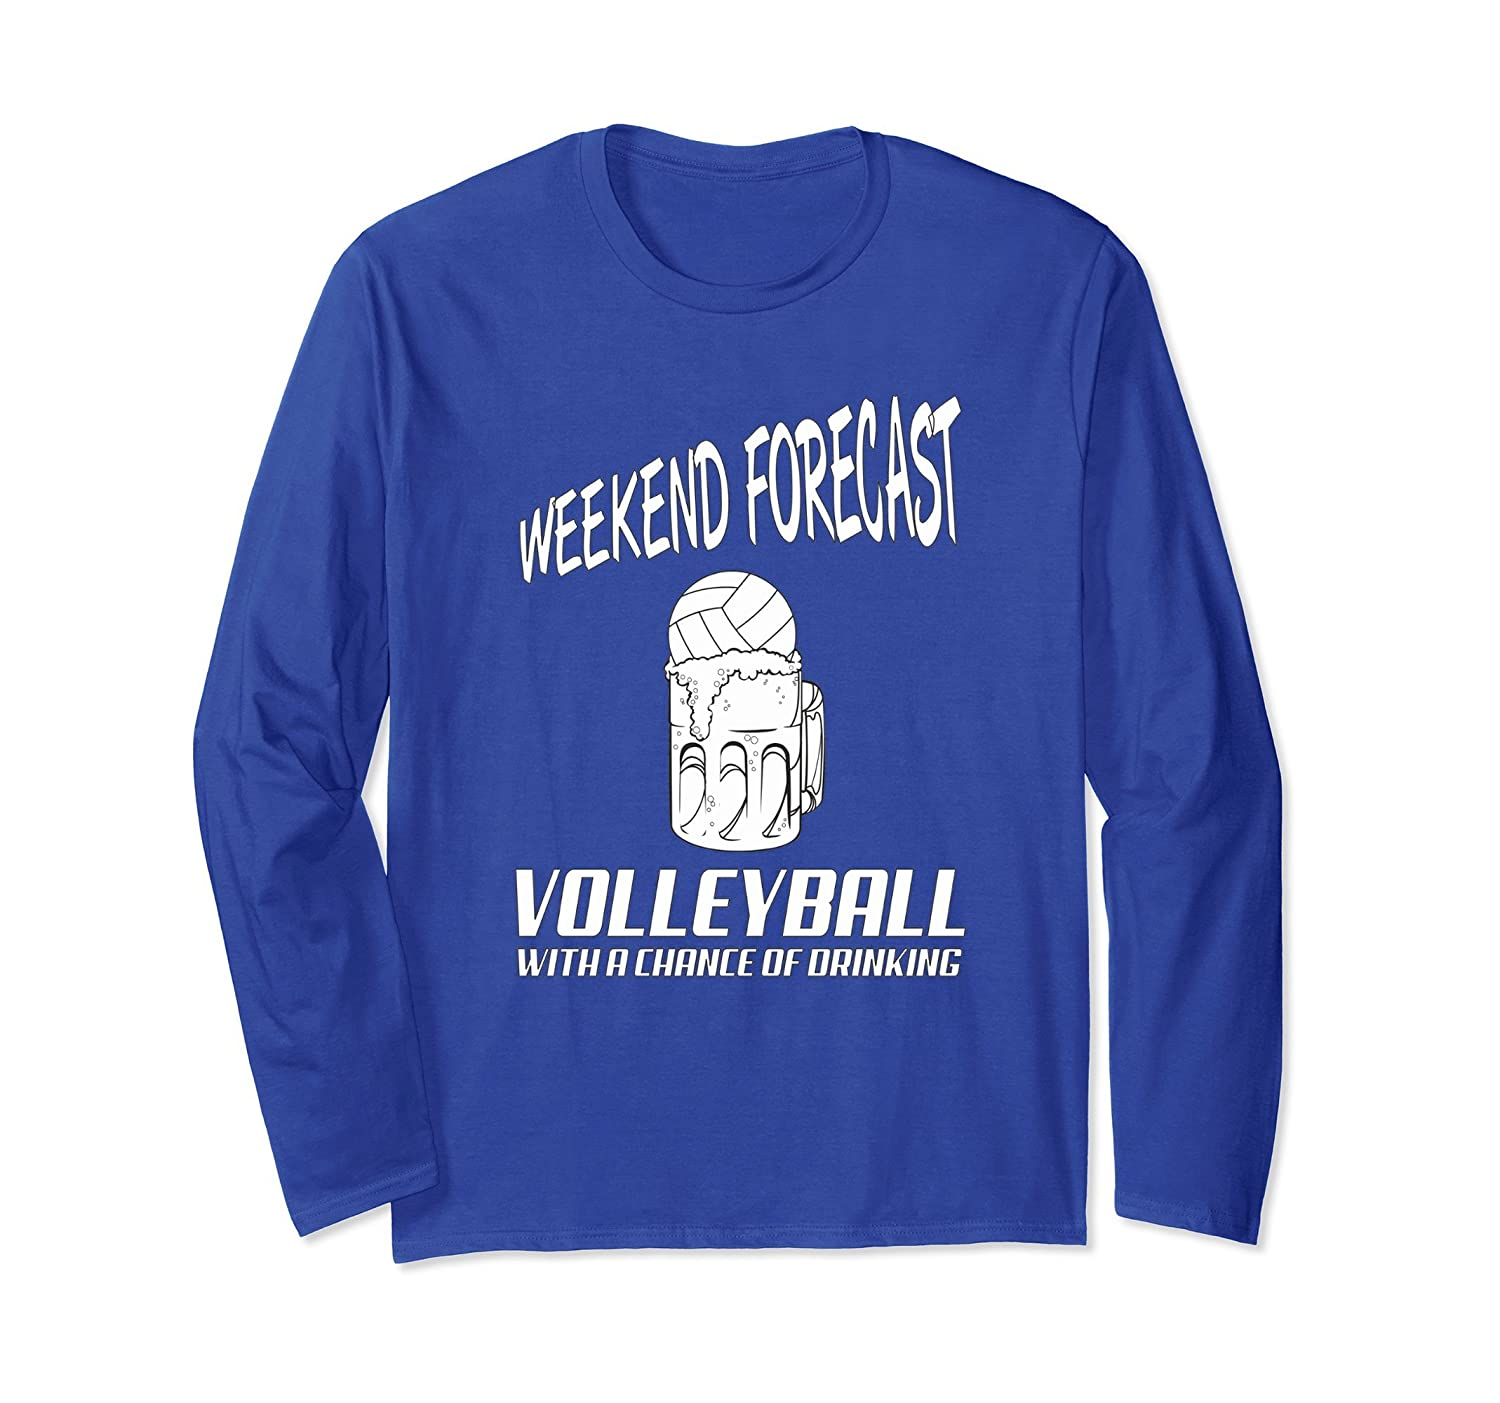 Weekend Forecast Volleyball With Chance Of Drinking T-Shirt-ah my shirt one gift